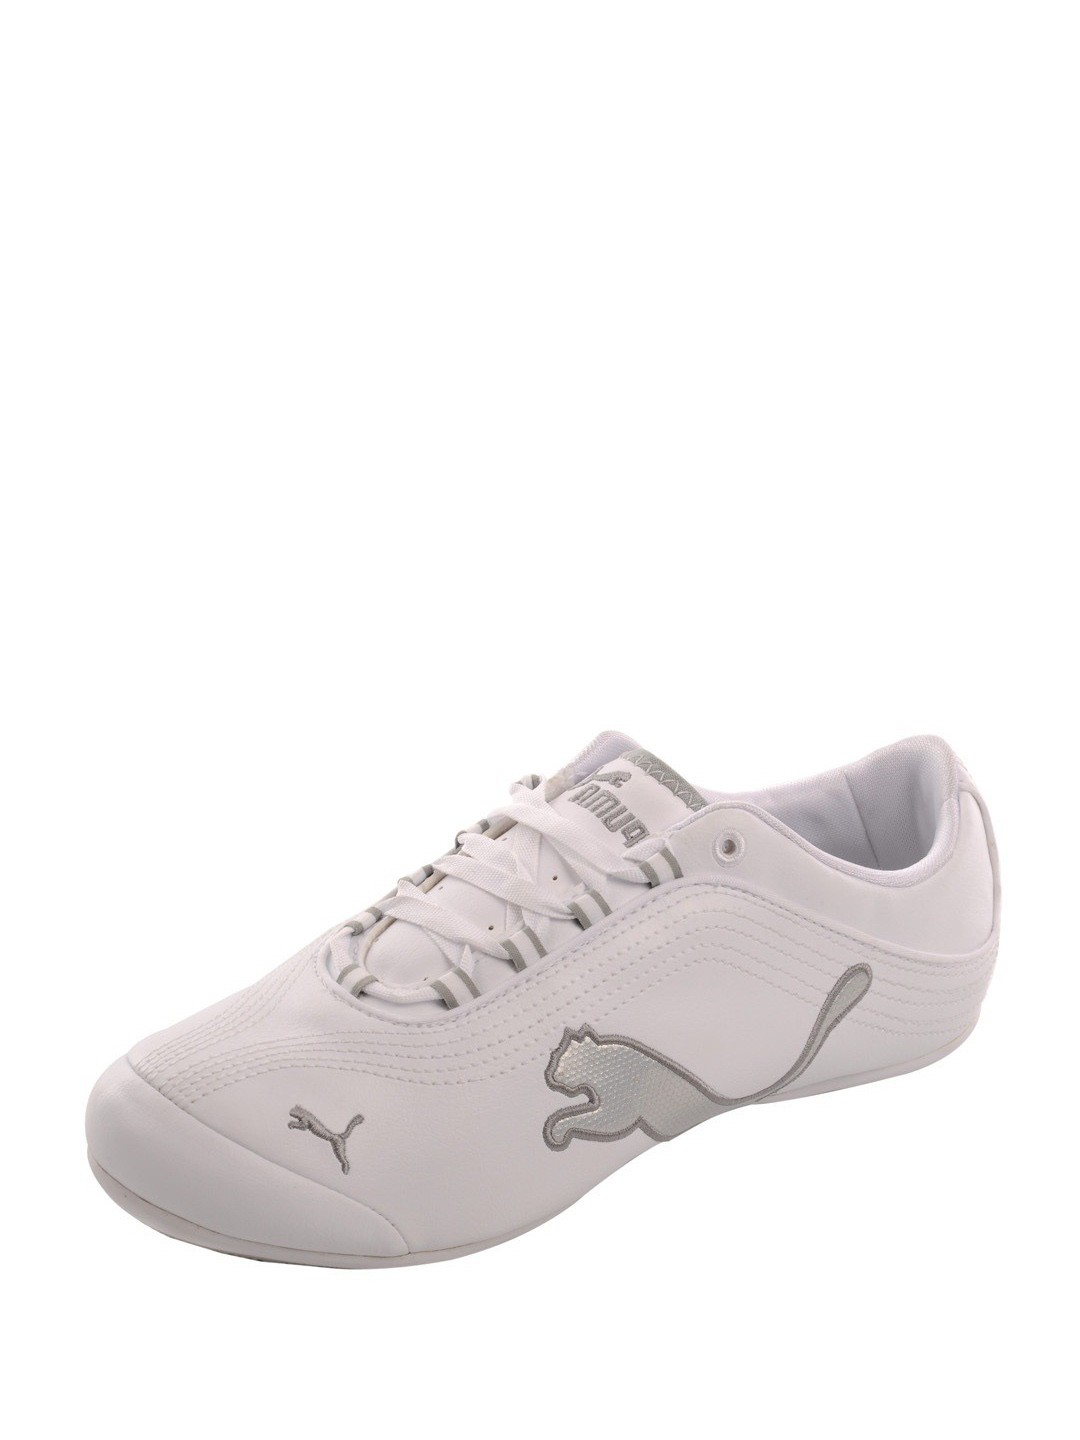 buy soleil cat sports shoes for s